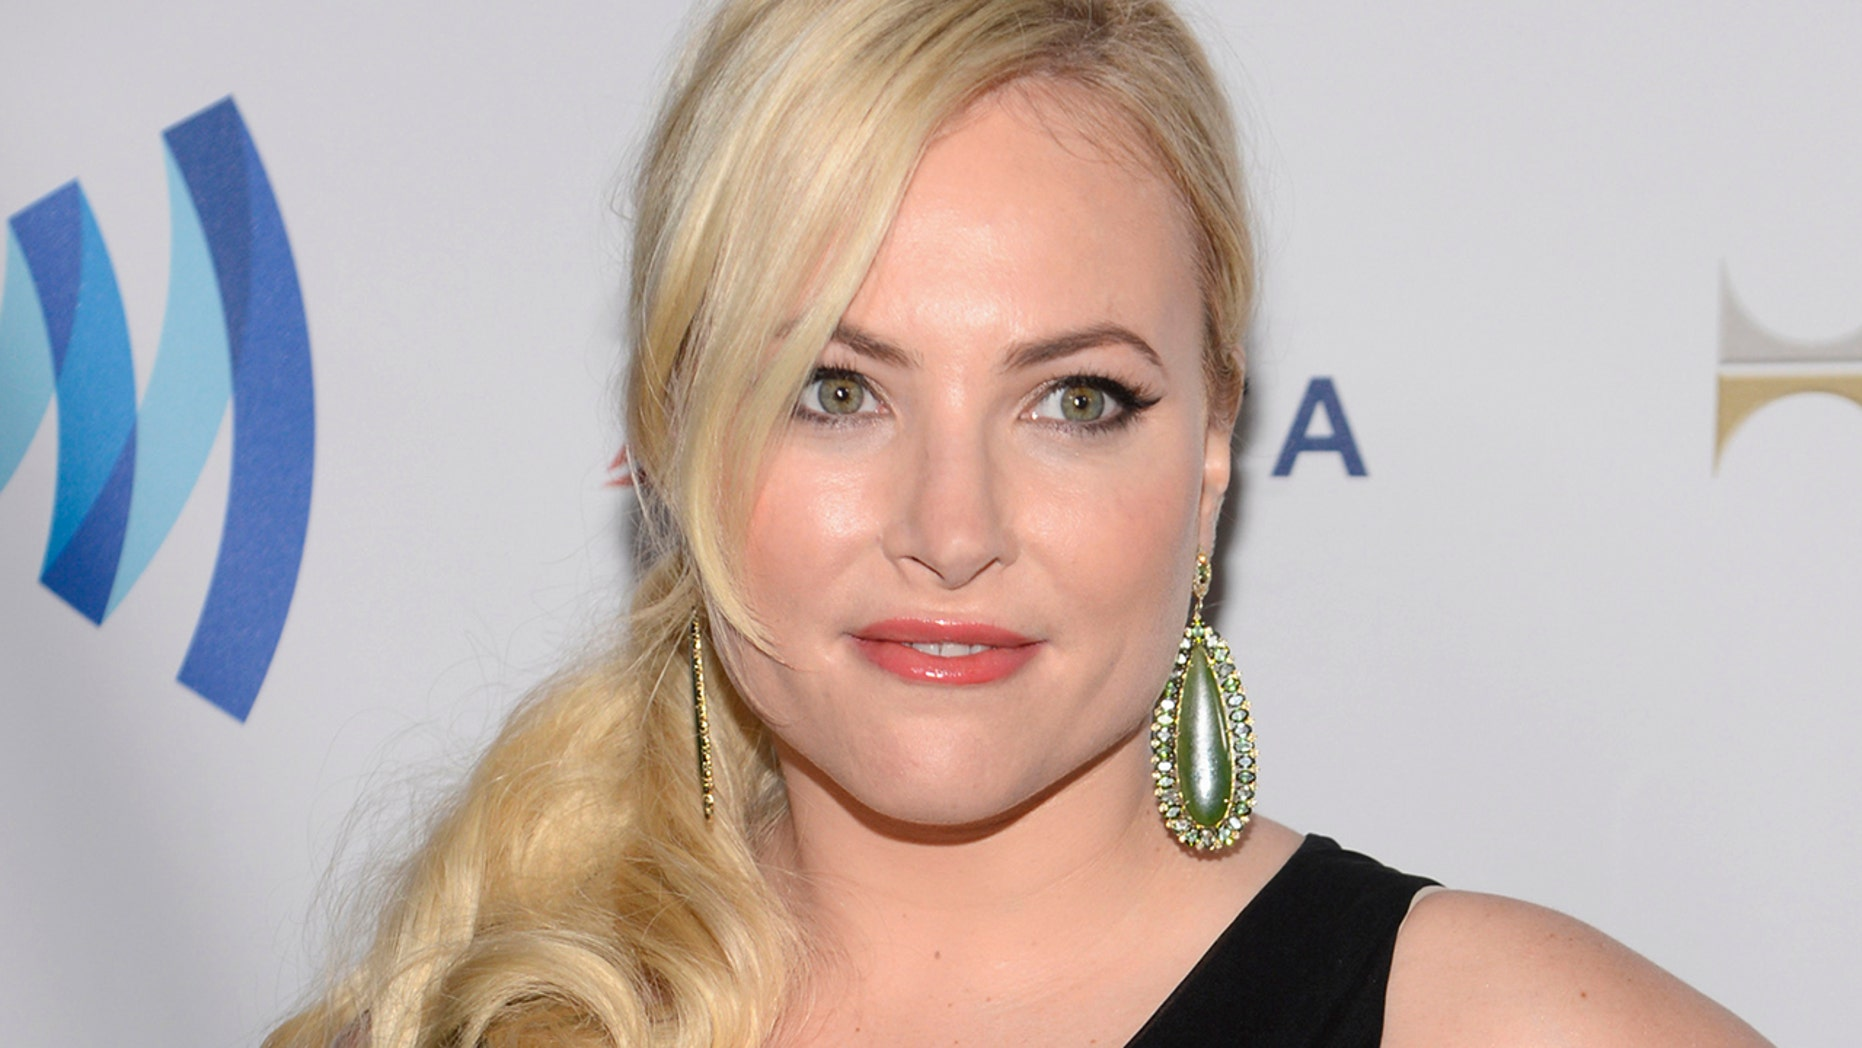 Meghan McCain defended her comments on the national anthem protests.